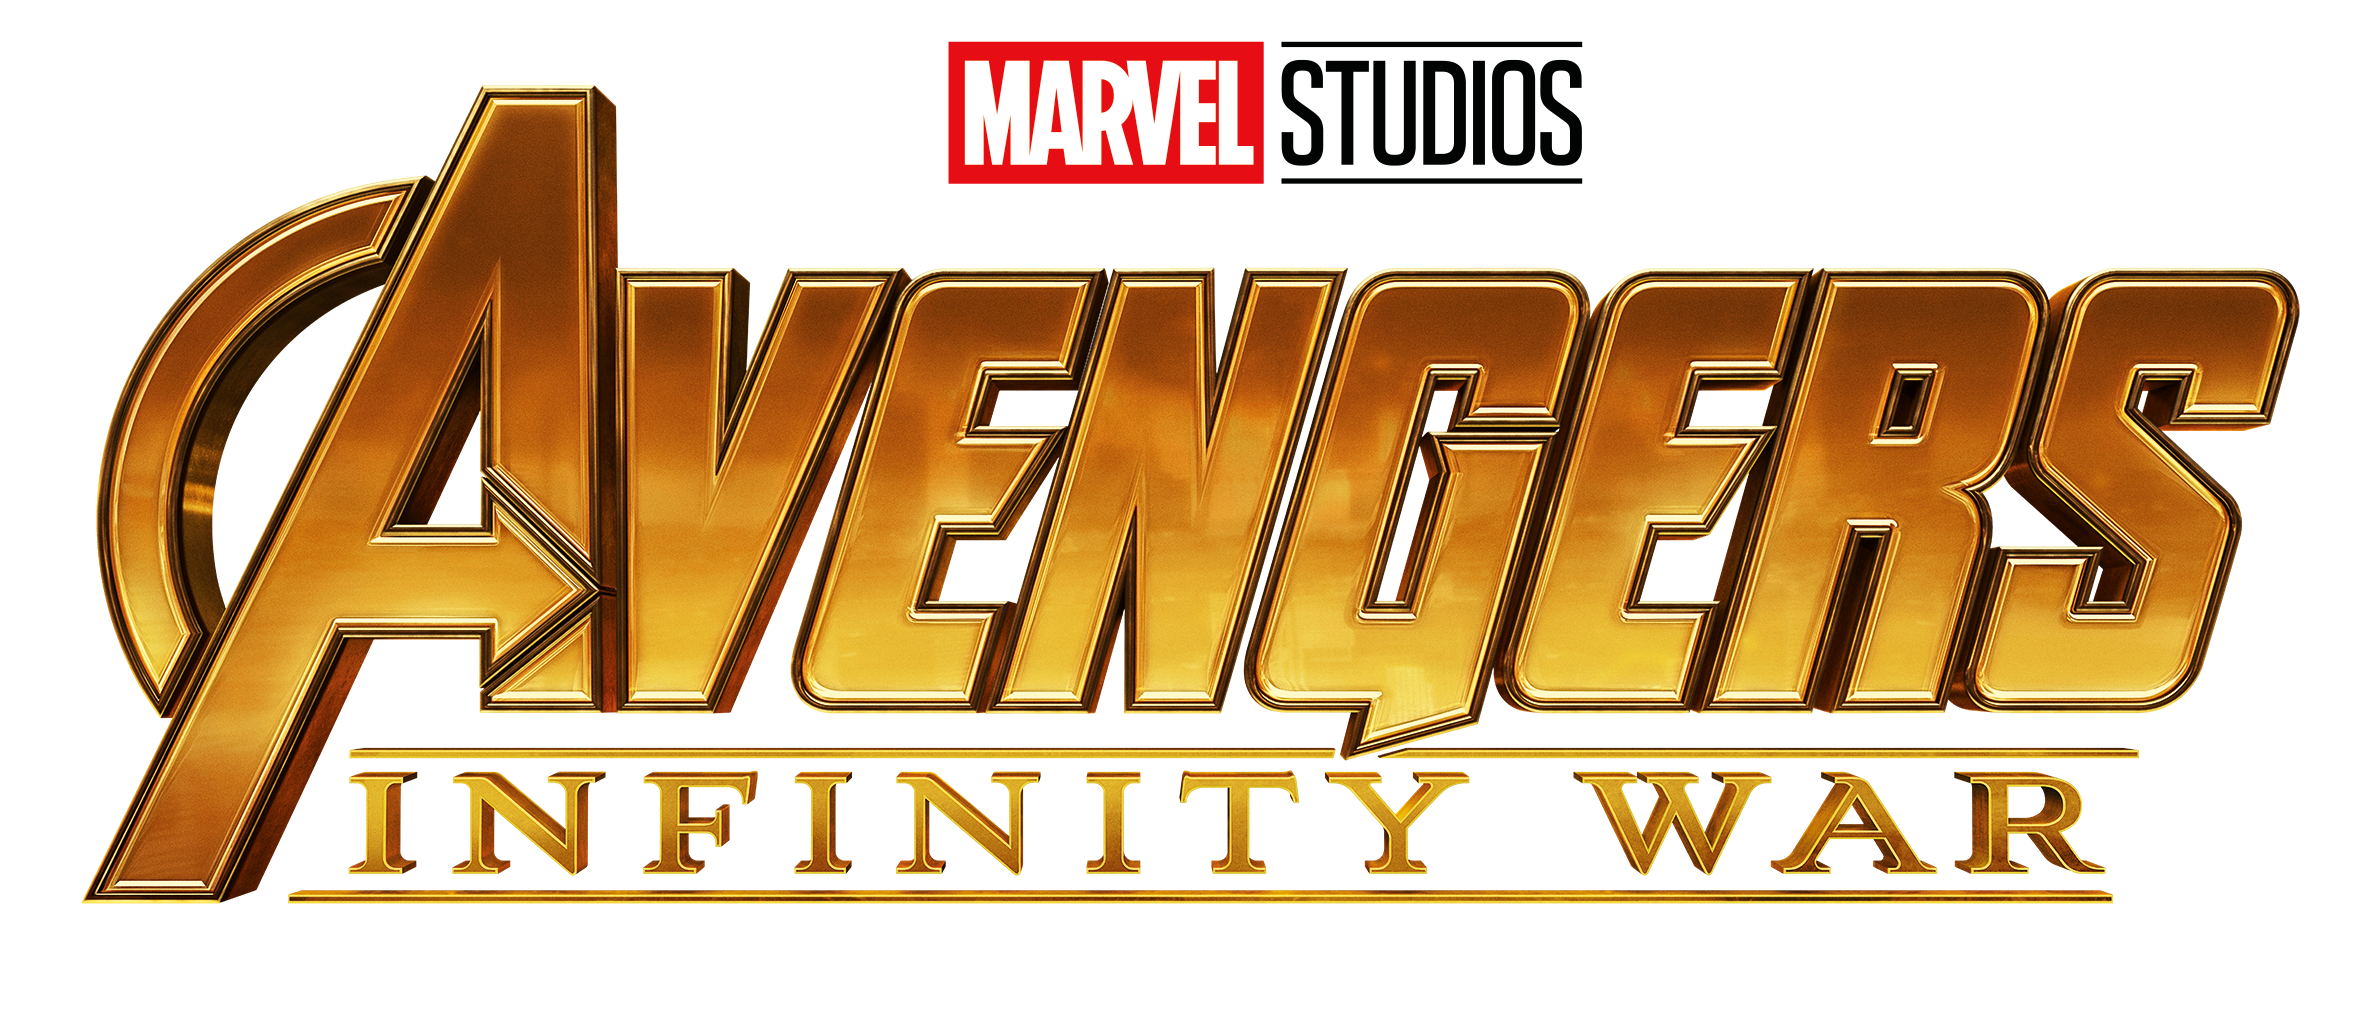 Right now I got access to the new official Infinity War